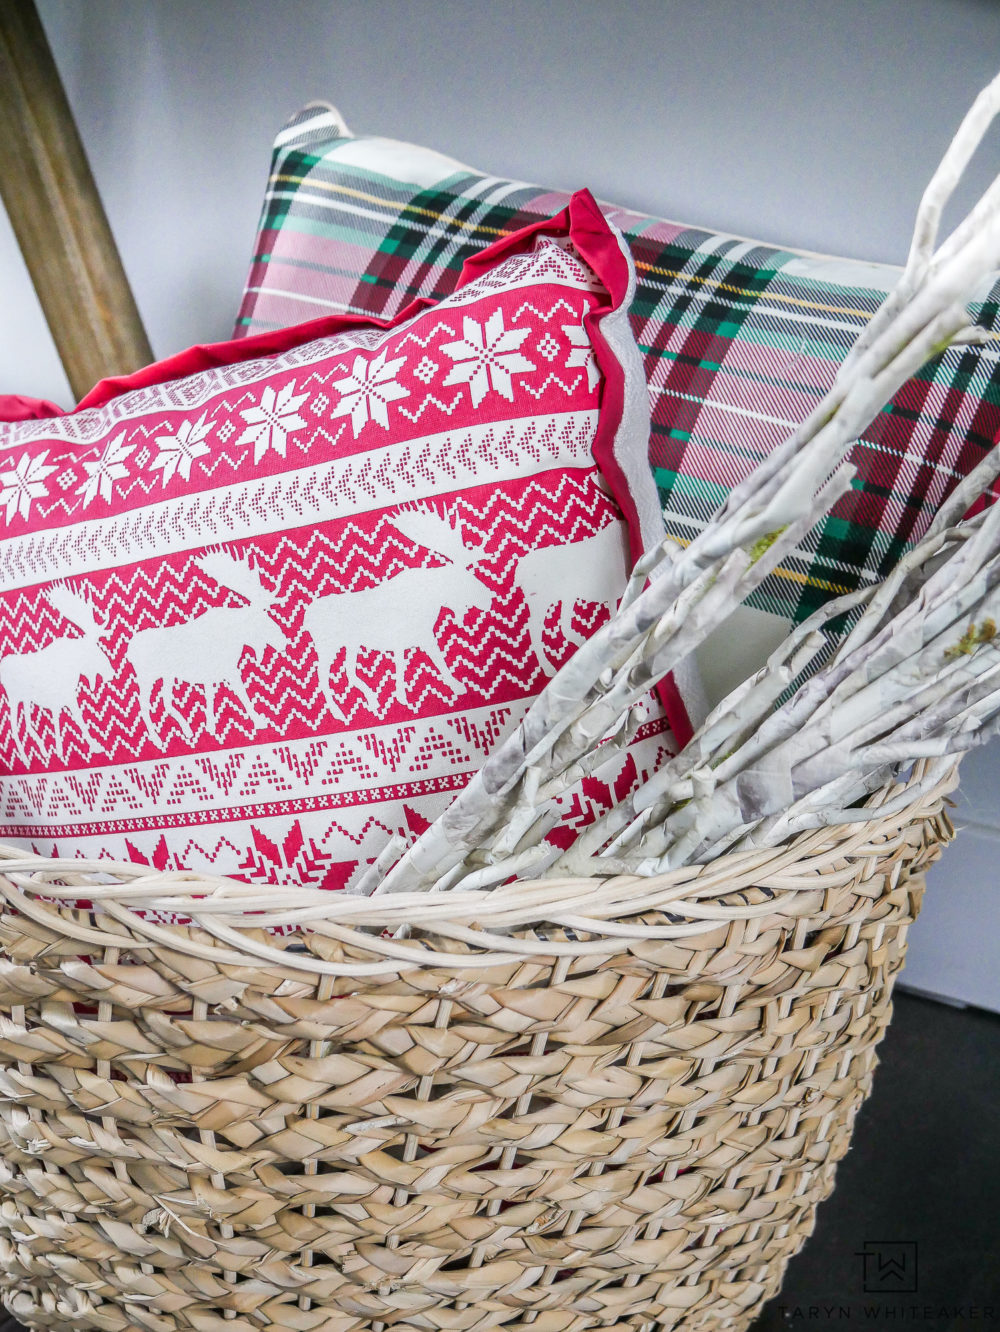 Christmas Pillows in a basket with twigs